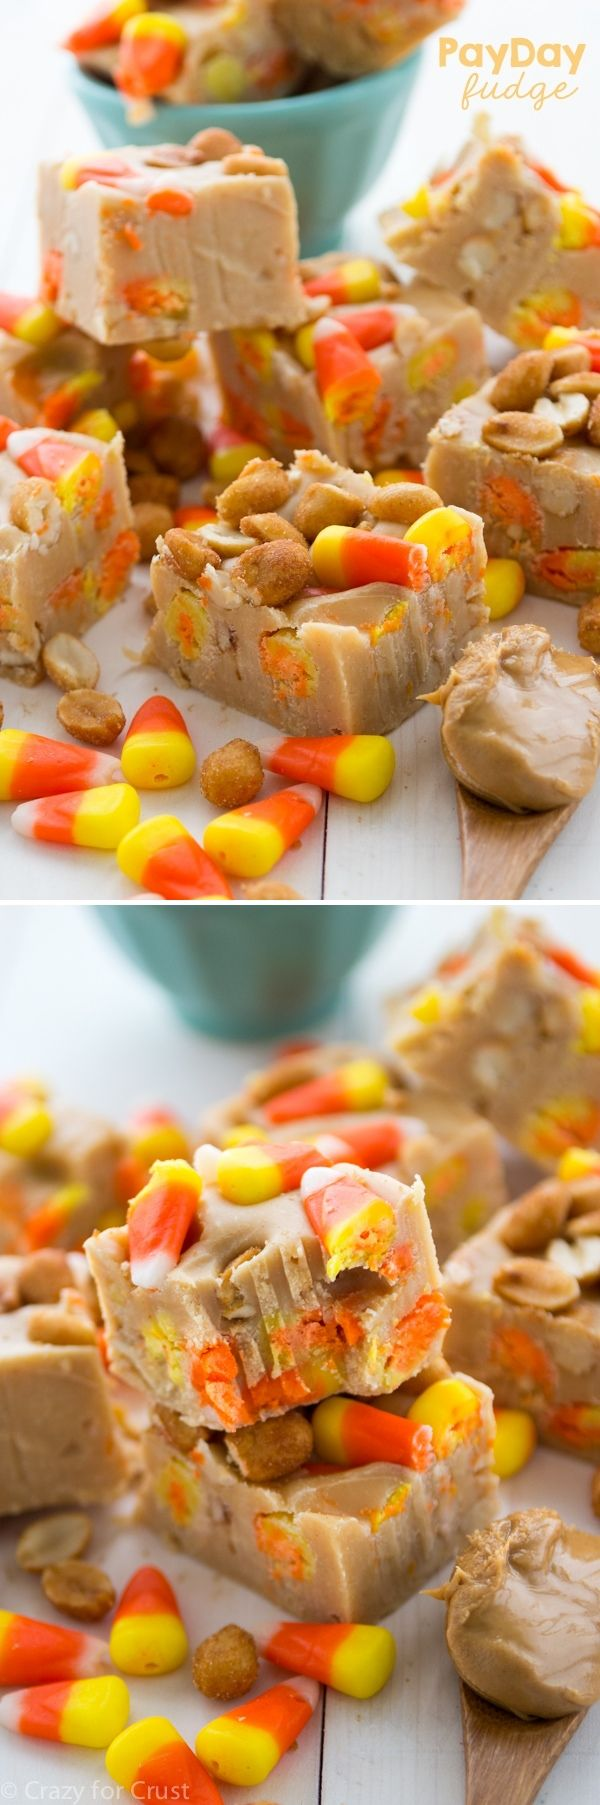 PayDay Fudge (want to make without candy corn and more peanuts)